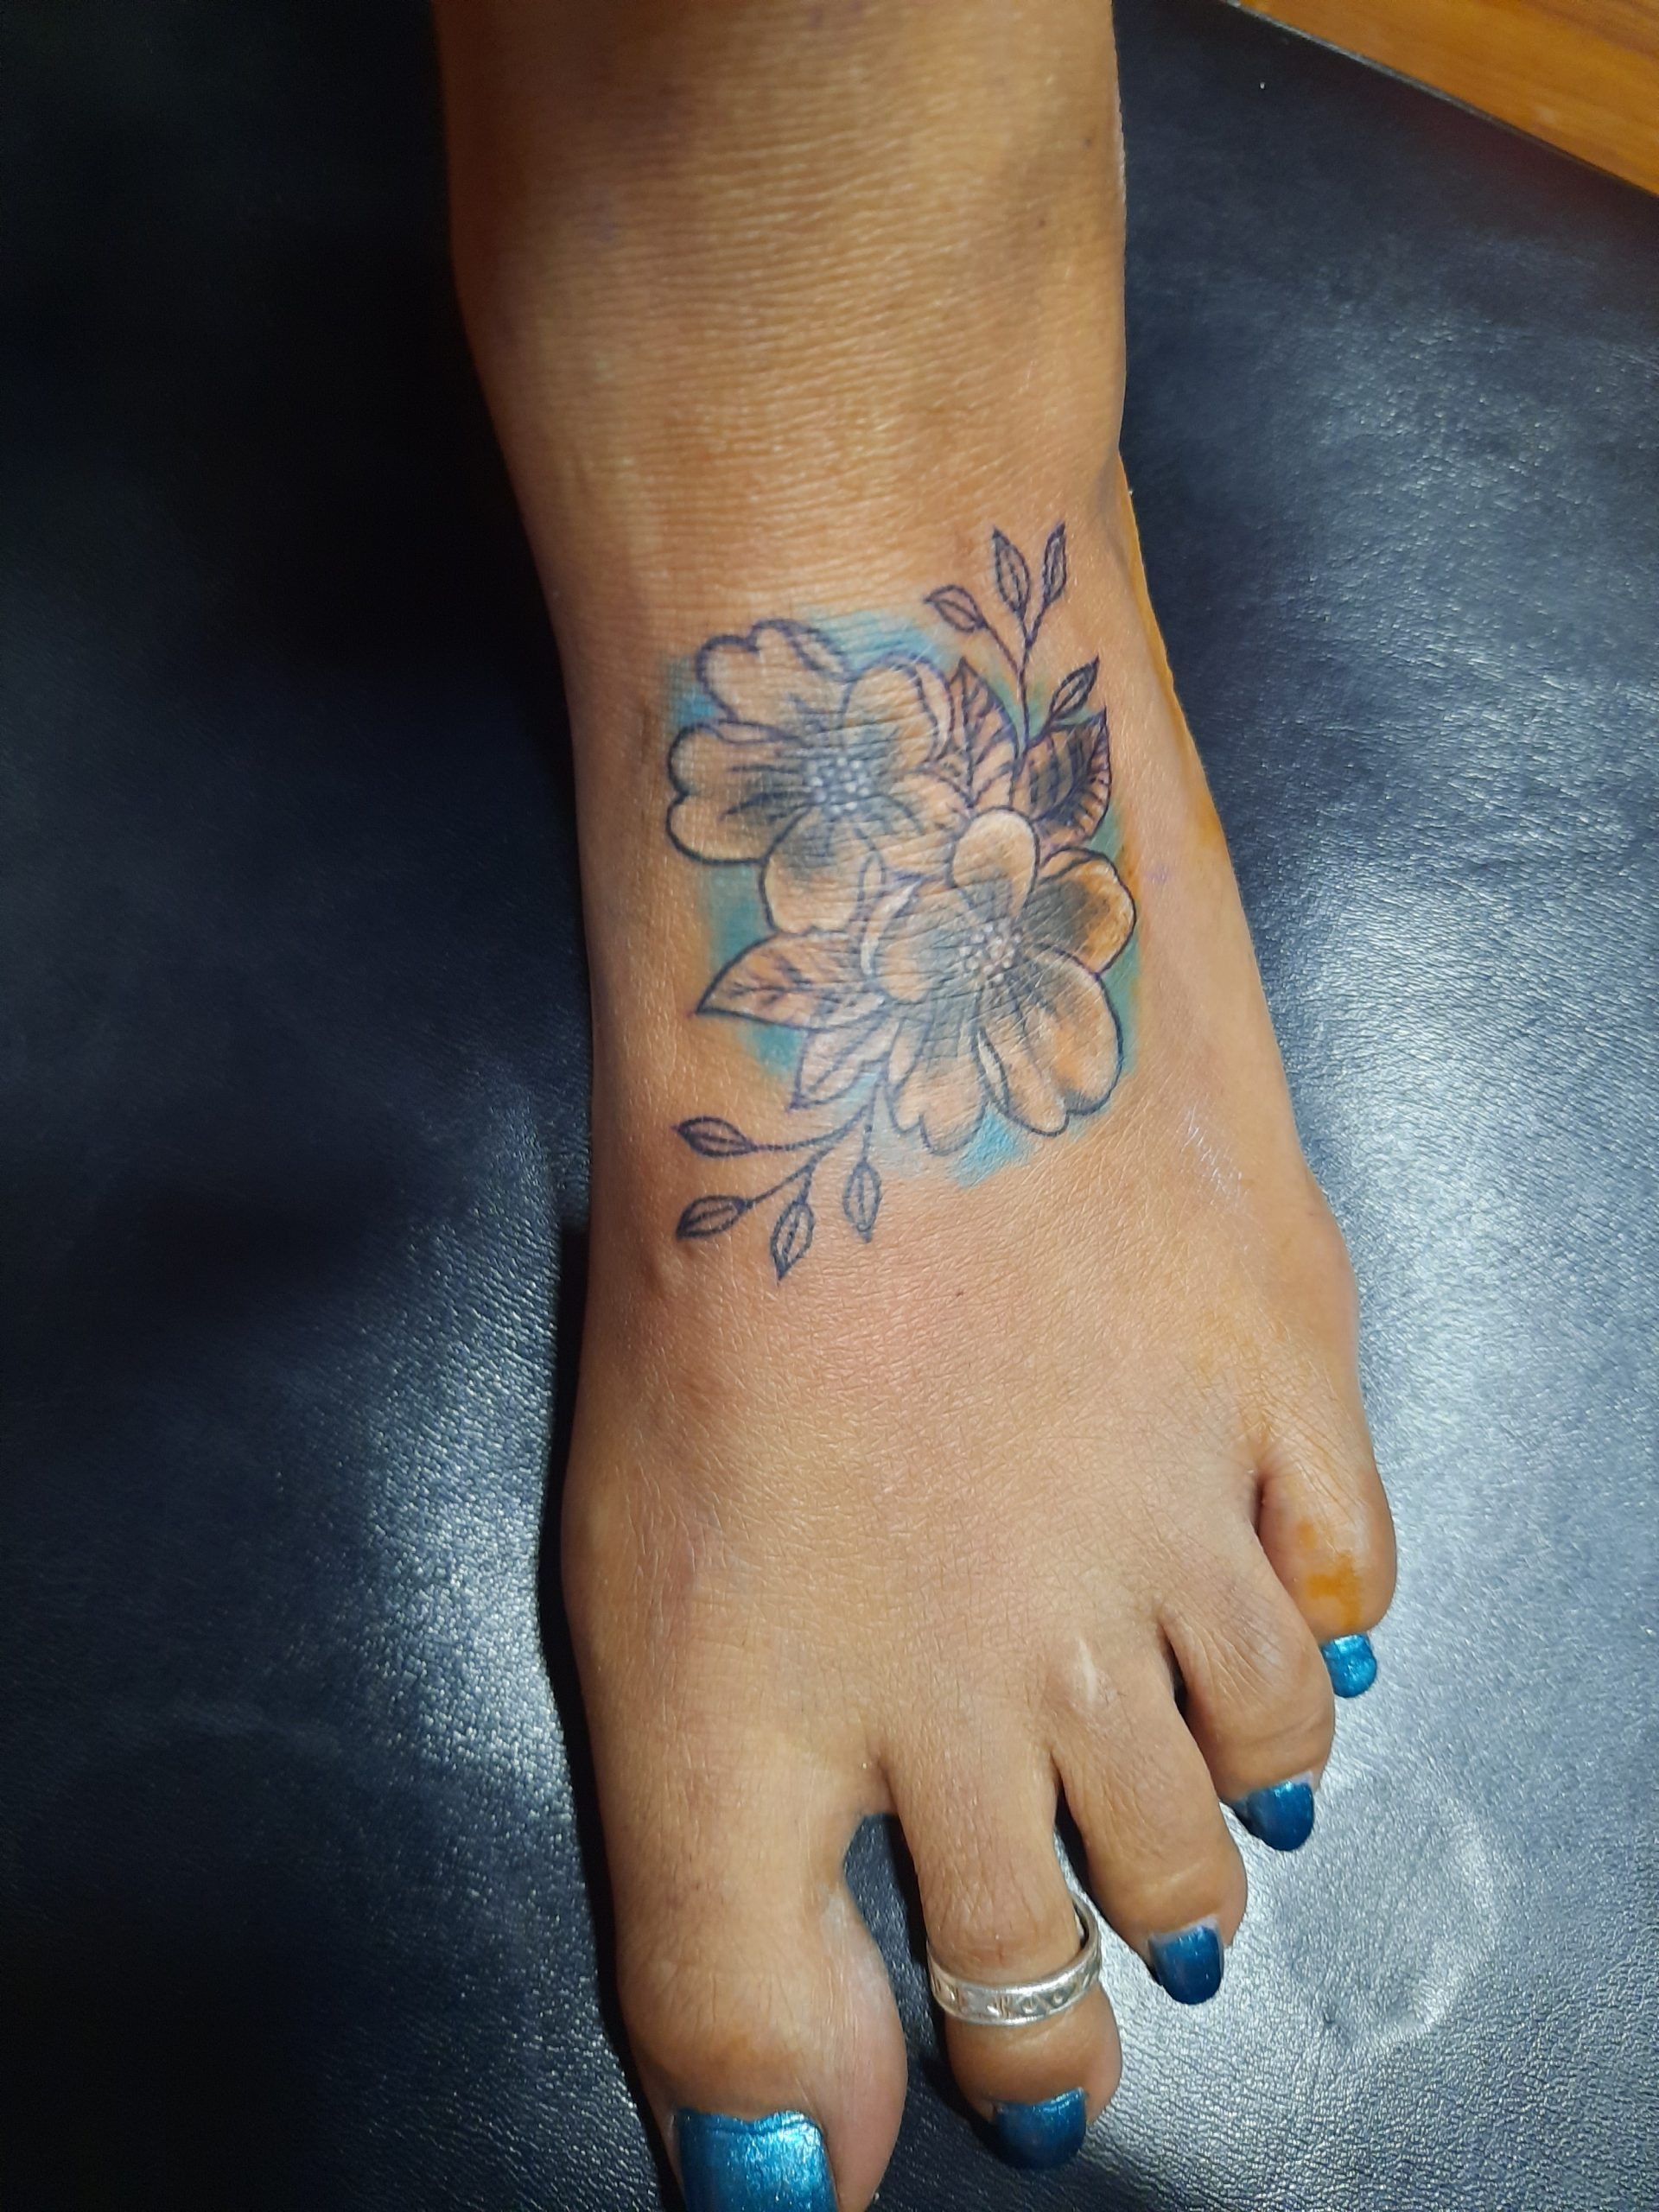 Color Tattoo Designs | arazwa Tattoo & Body Piercing